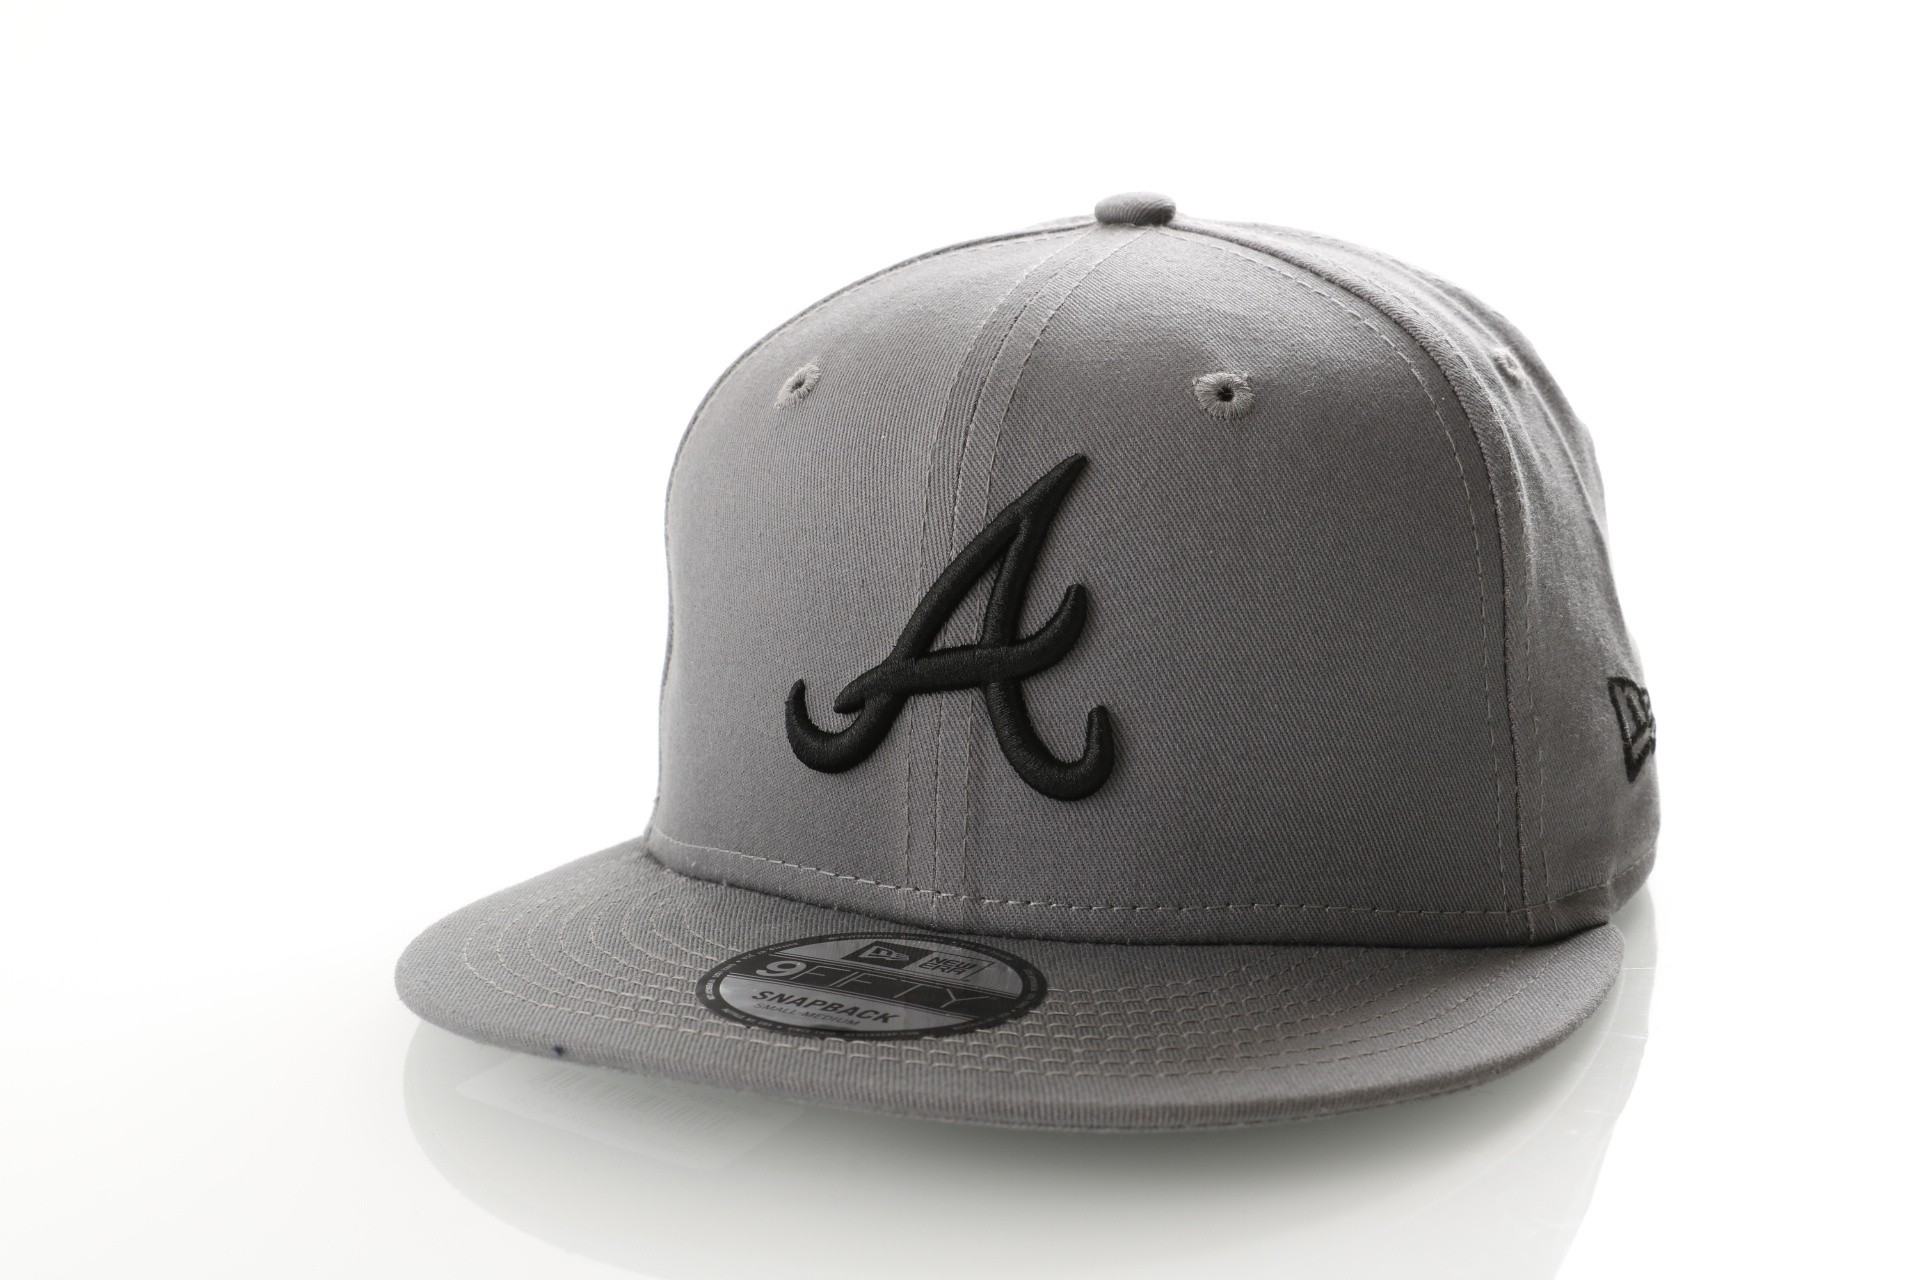 Afbeelding van New Era LEAGUE ESSENTIAL 9FIFTY ATLANTA BRAVES 11794689 Snapback Cap STORM GRAY/BLACK MLB